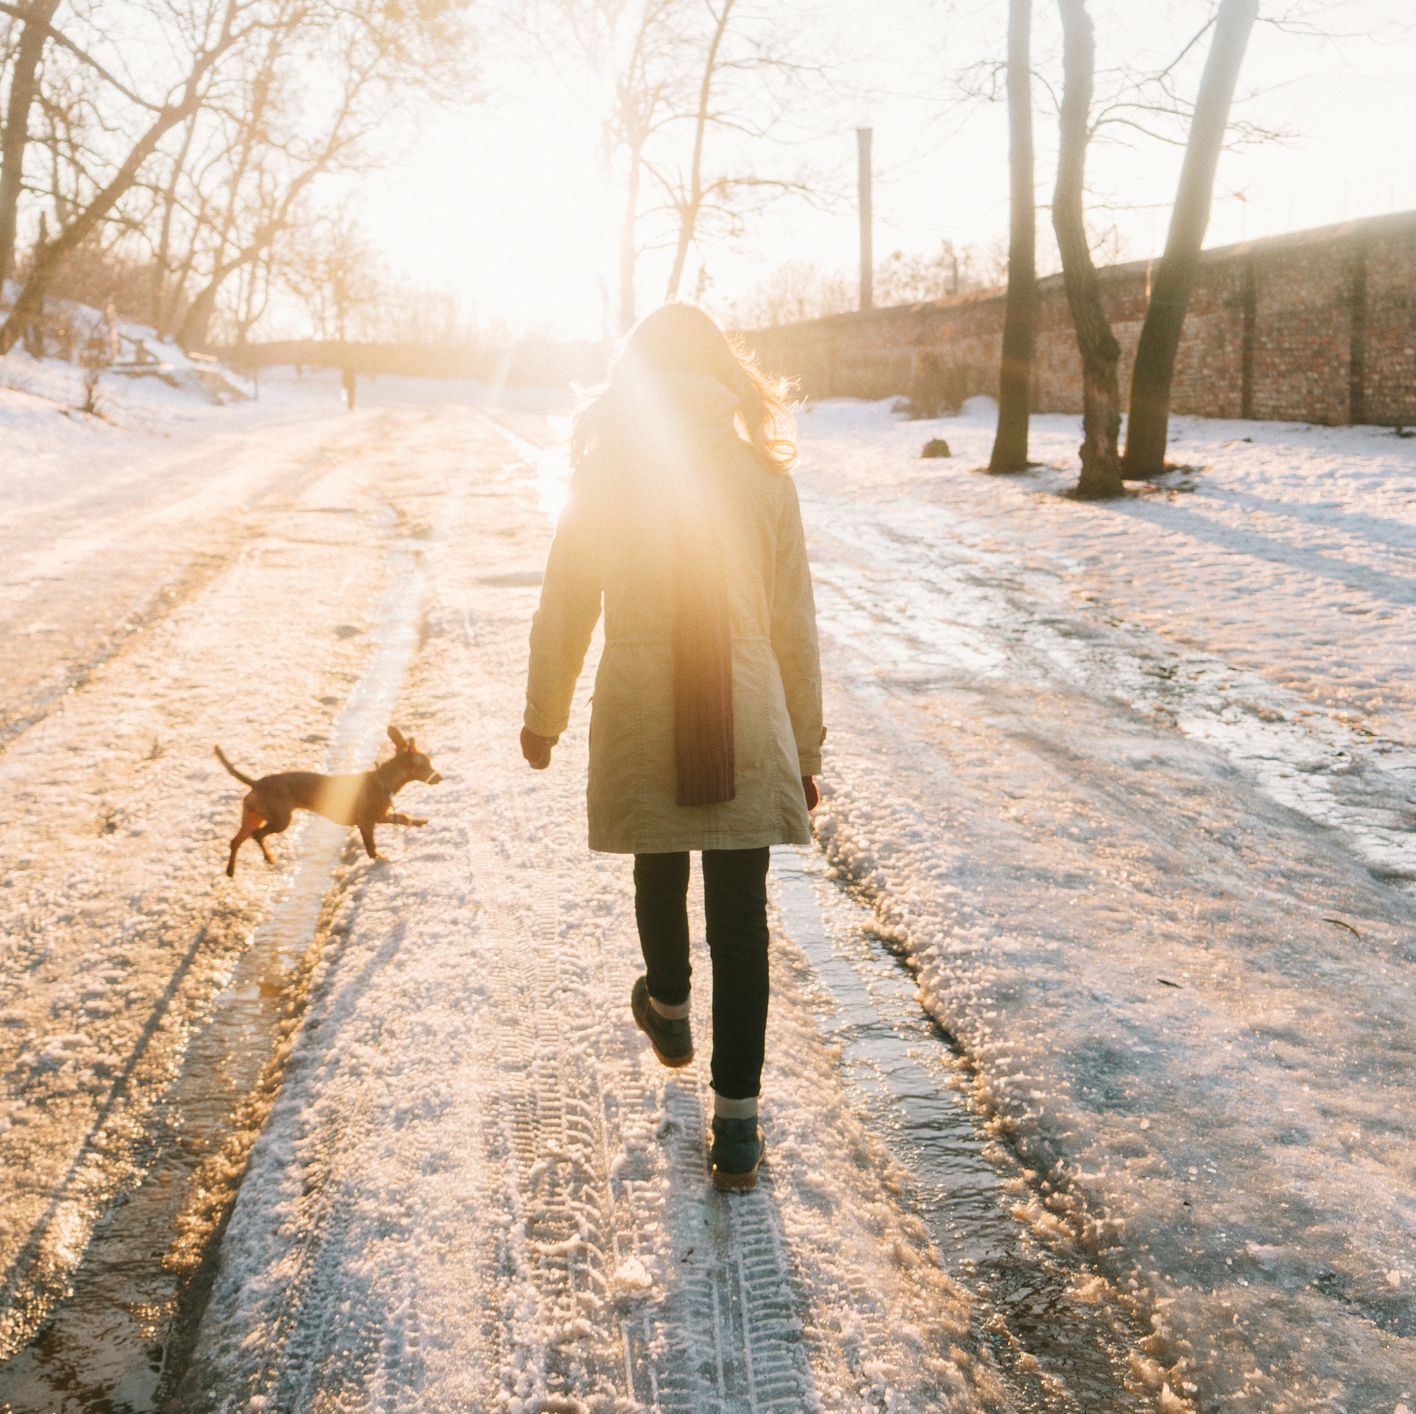 Woman walking in park with dog in winter